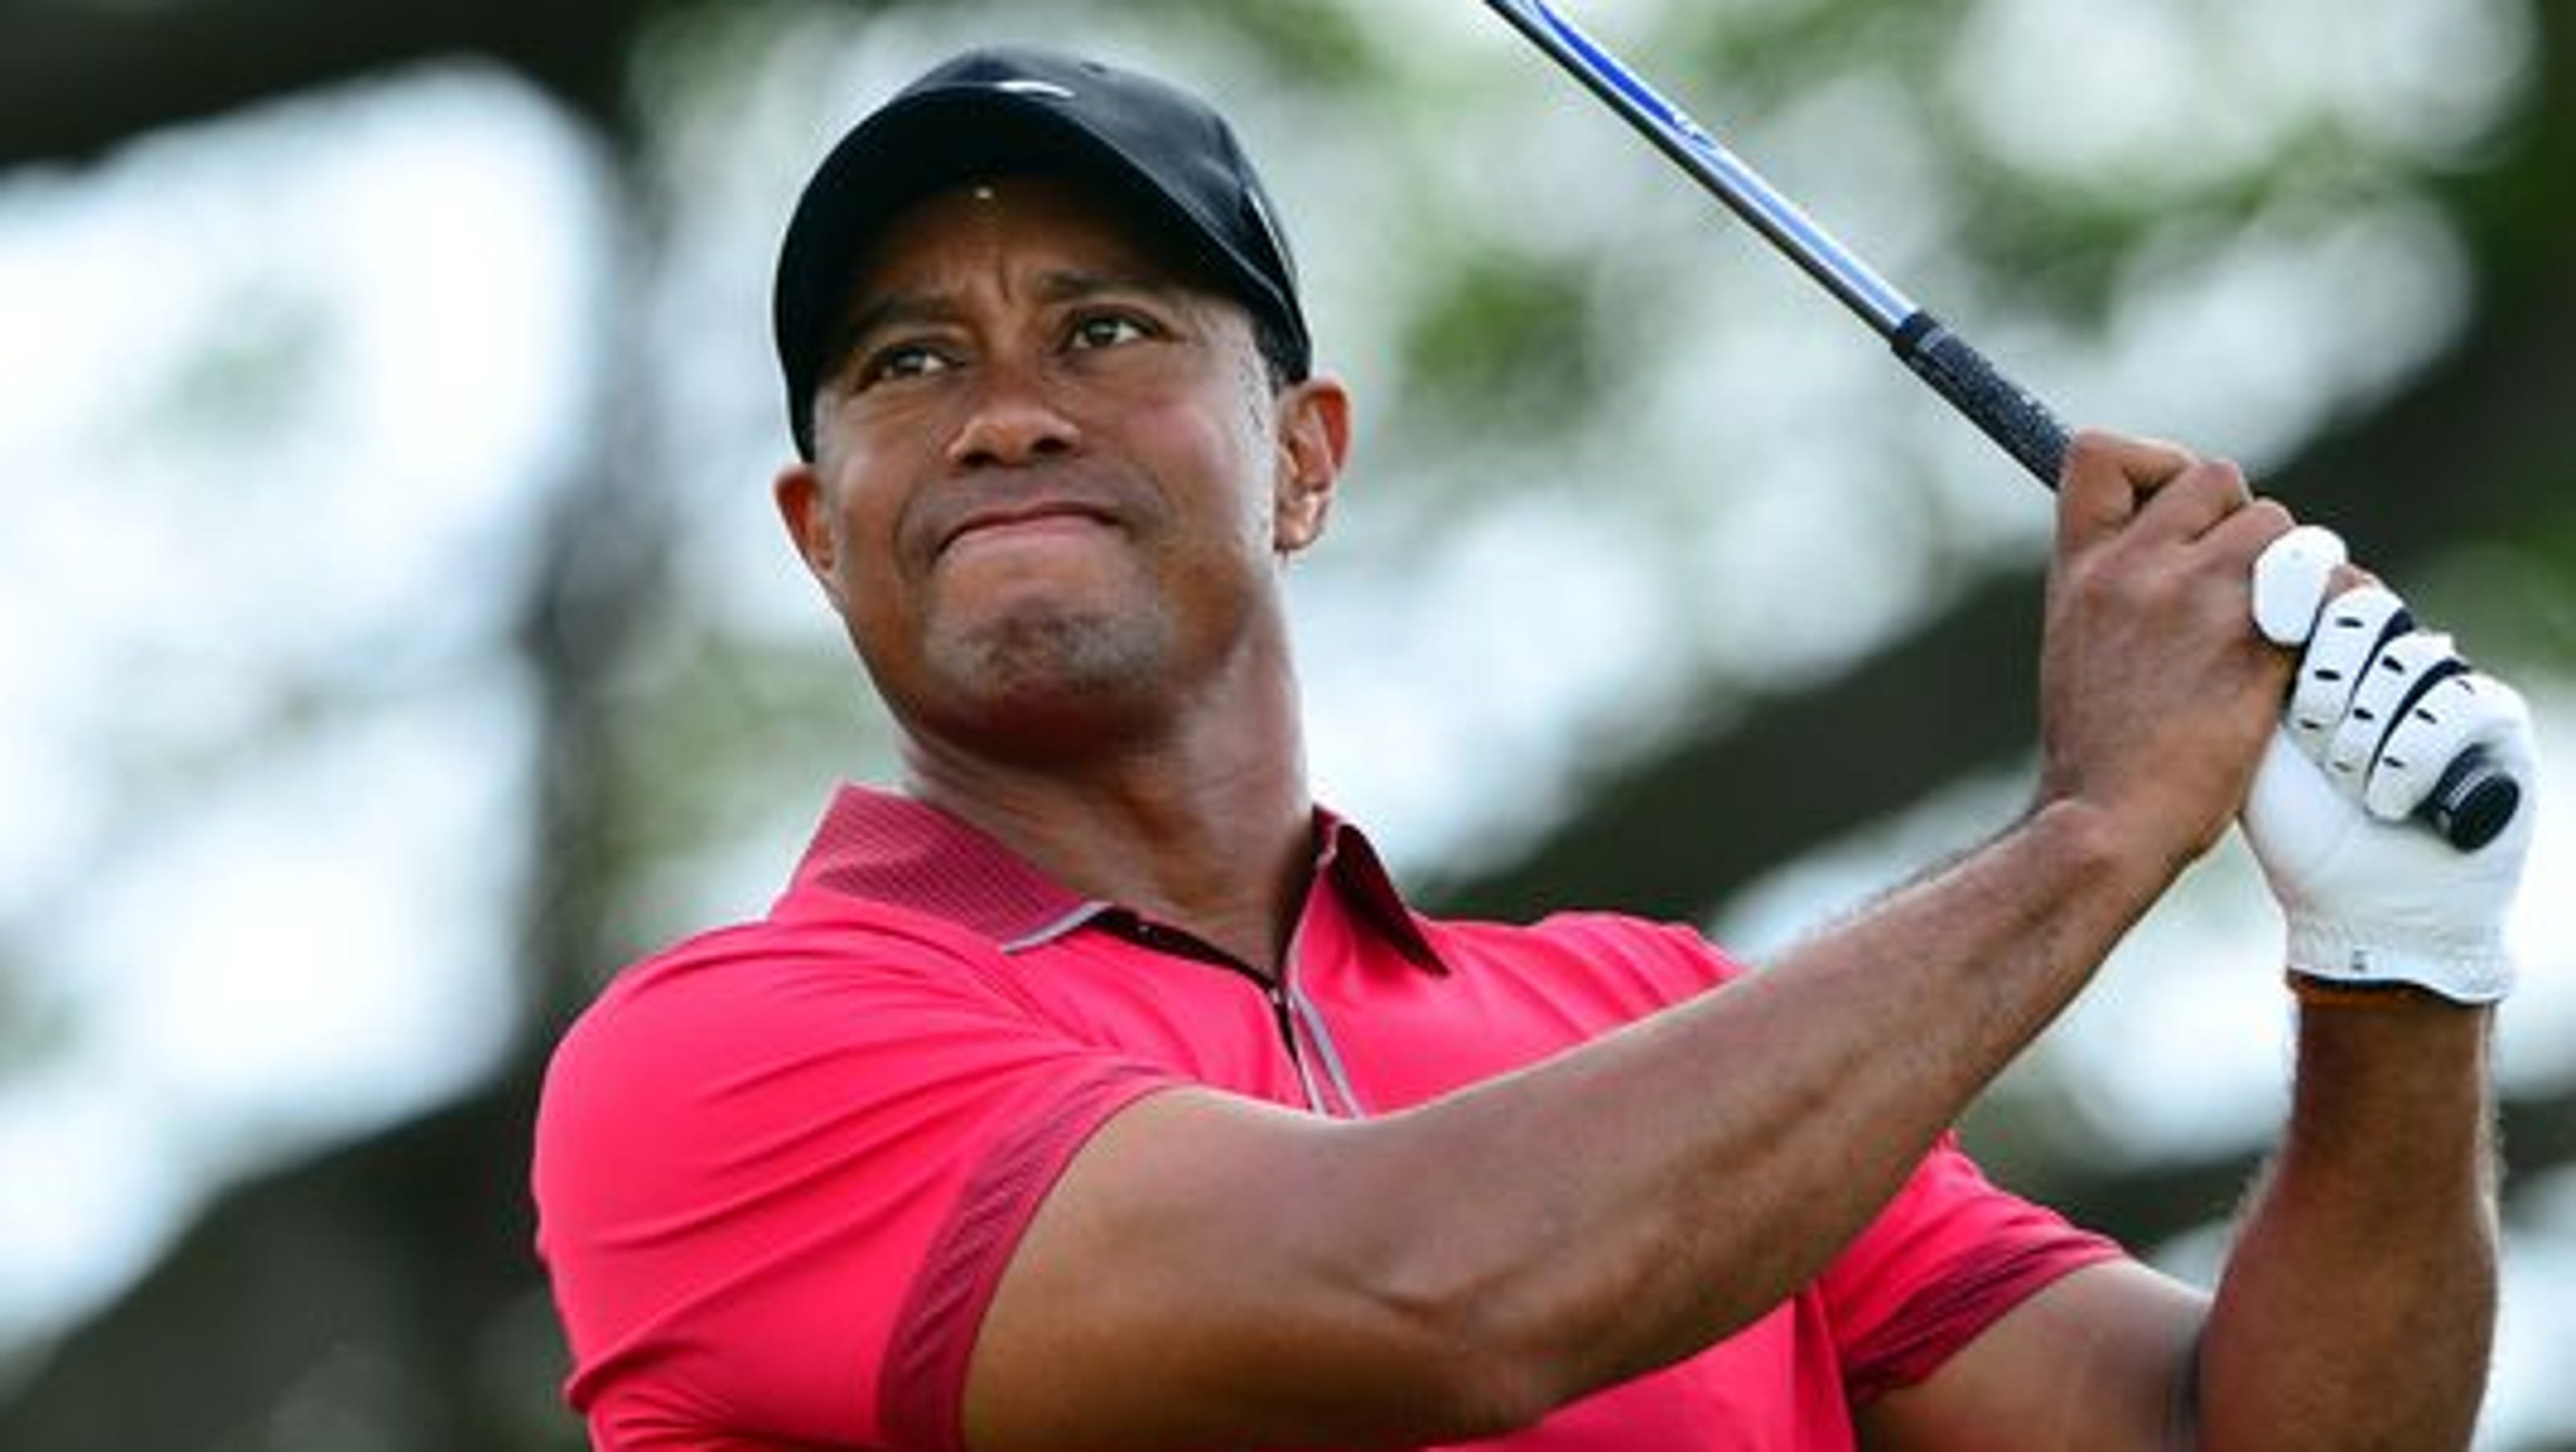 the life and career of tiger woods (reuters) - former world number one tiger woods, whose ranking has slipped to a mind-boggling 416th, celebrates his 40th birthday on wednesday amid growing speculation over what he may yet still.